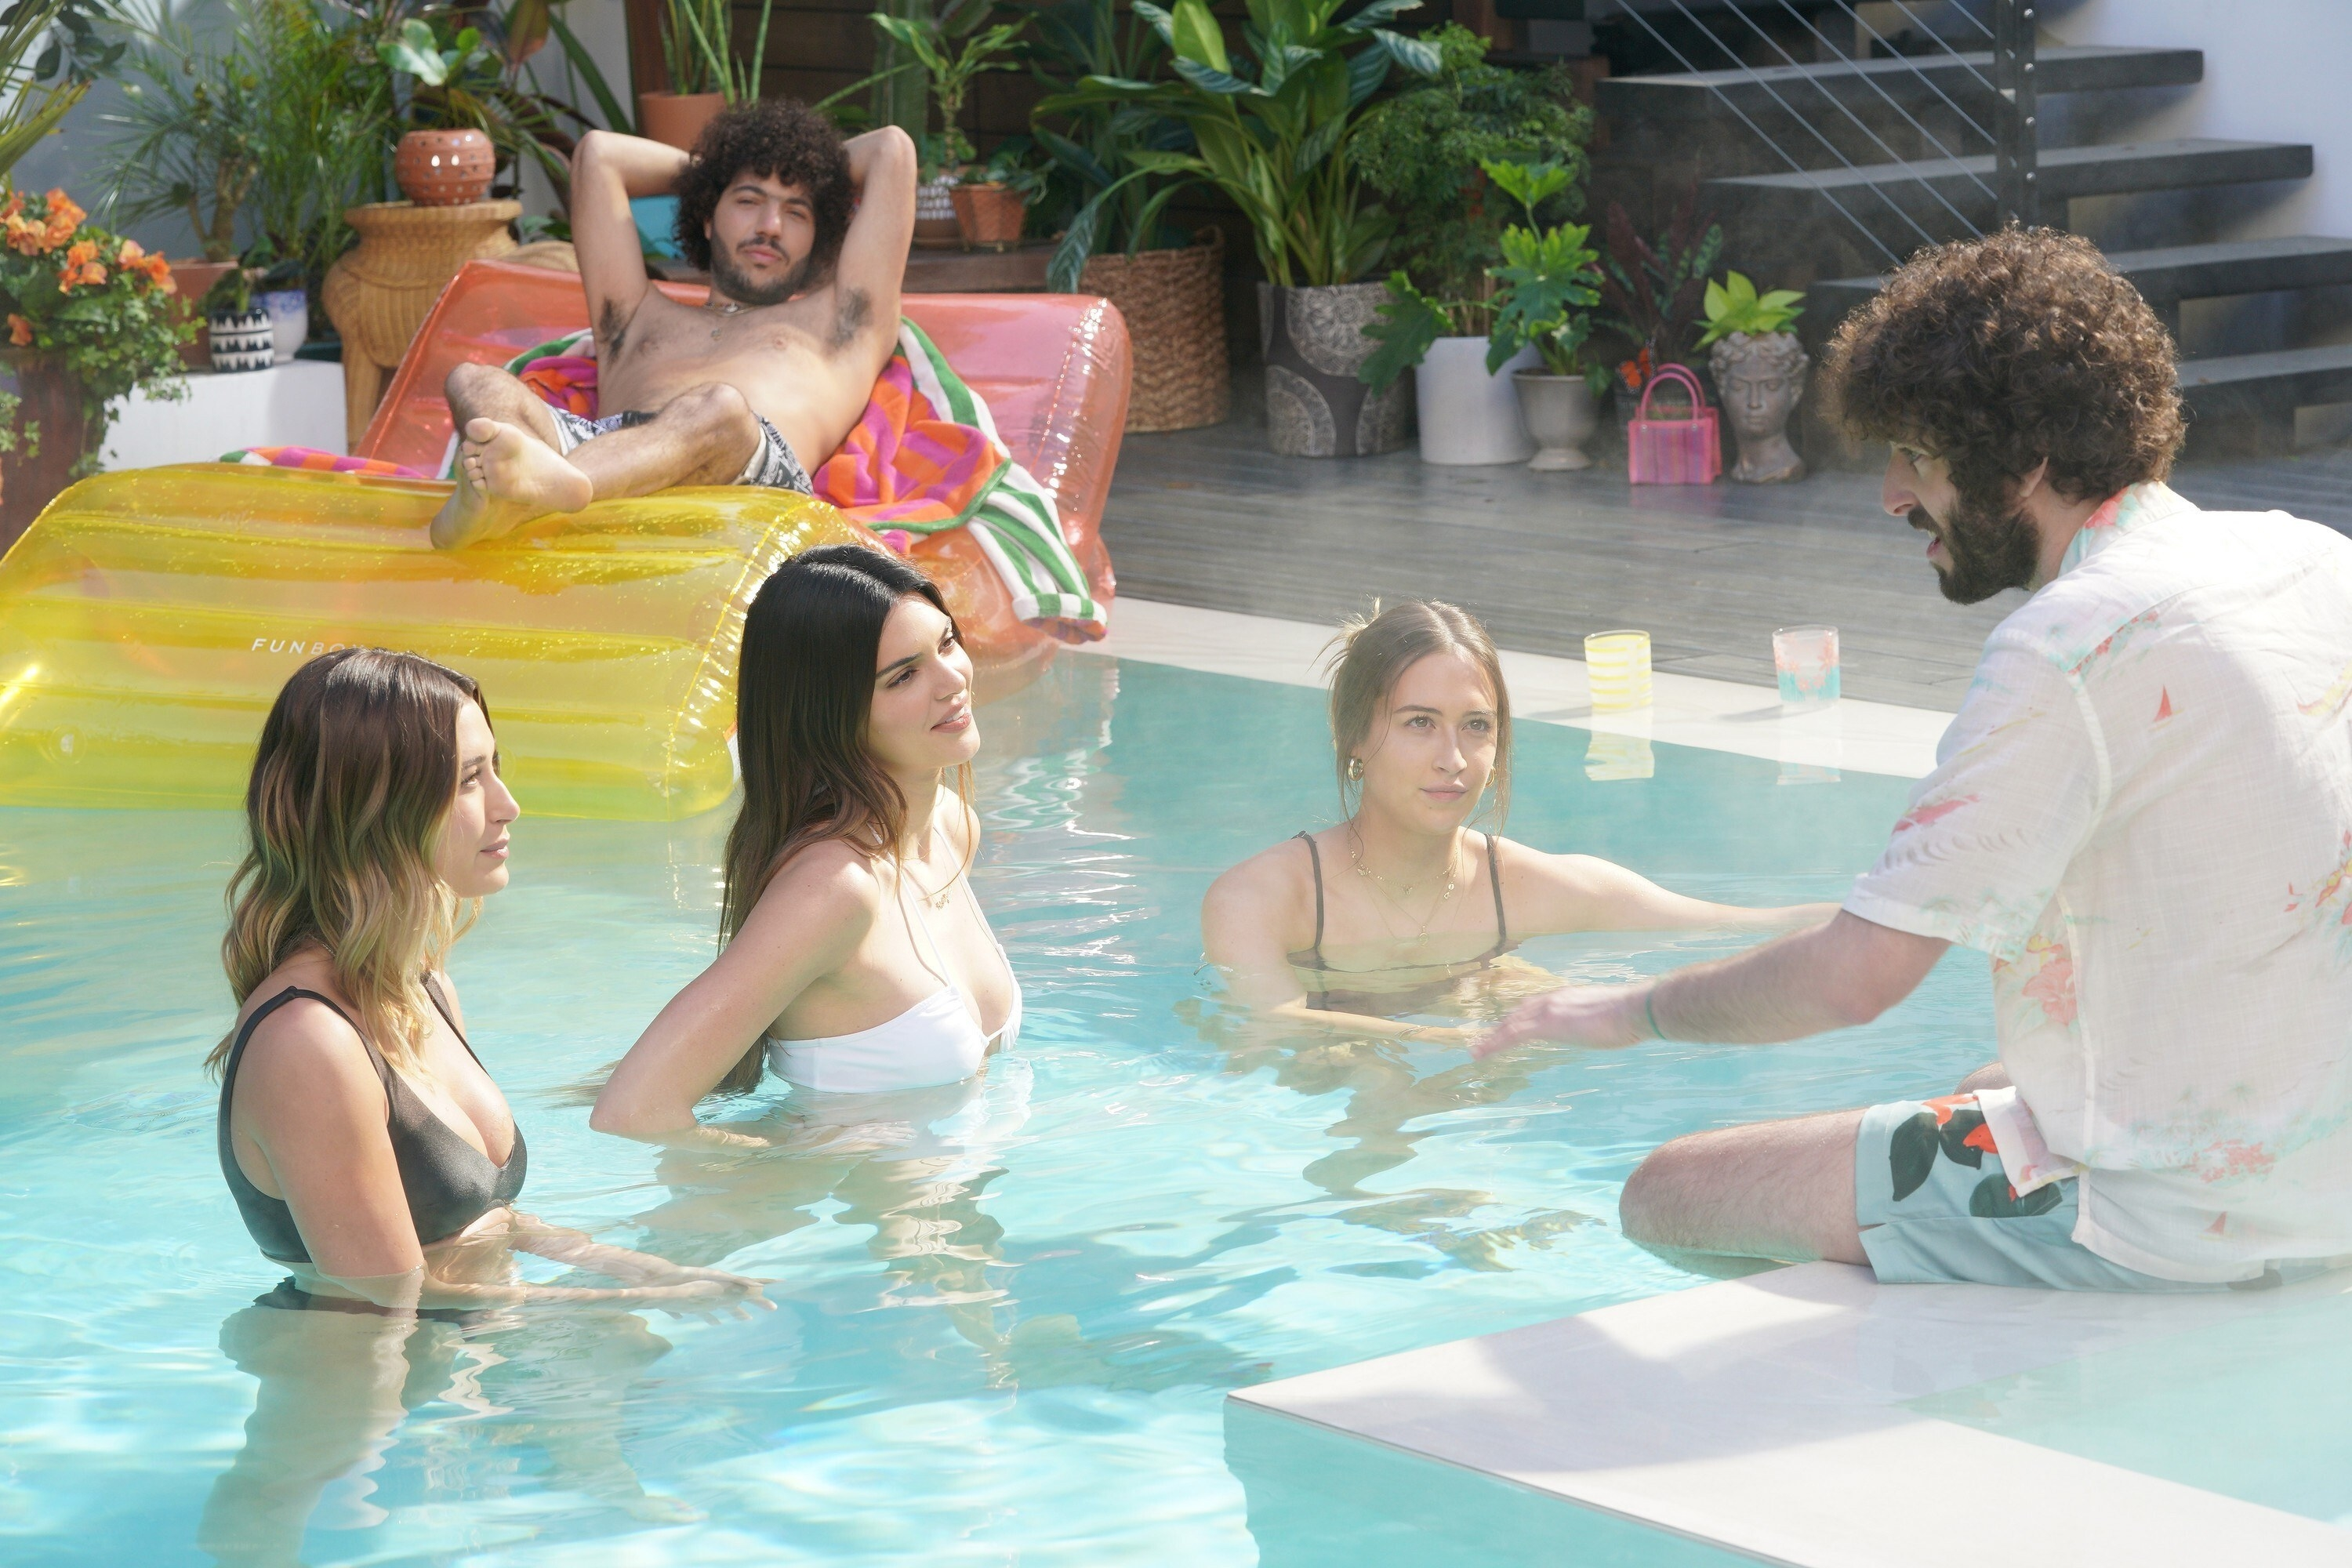 Hailey Bieber, Kendall Jenner, and Elsie Hewitt in a pool with Benny Blanco, lounging on a float in the back with Dave sitting on the ledge